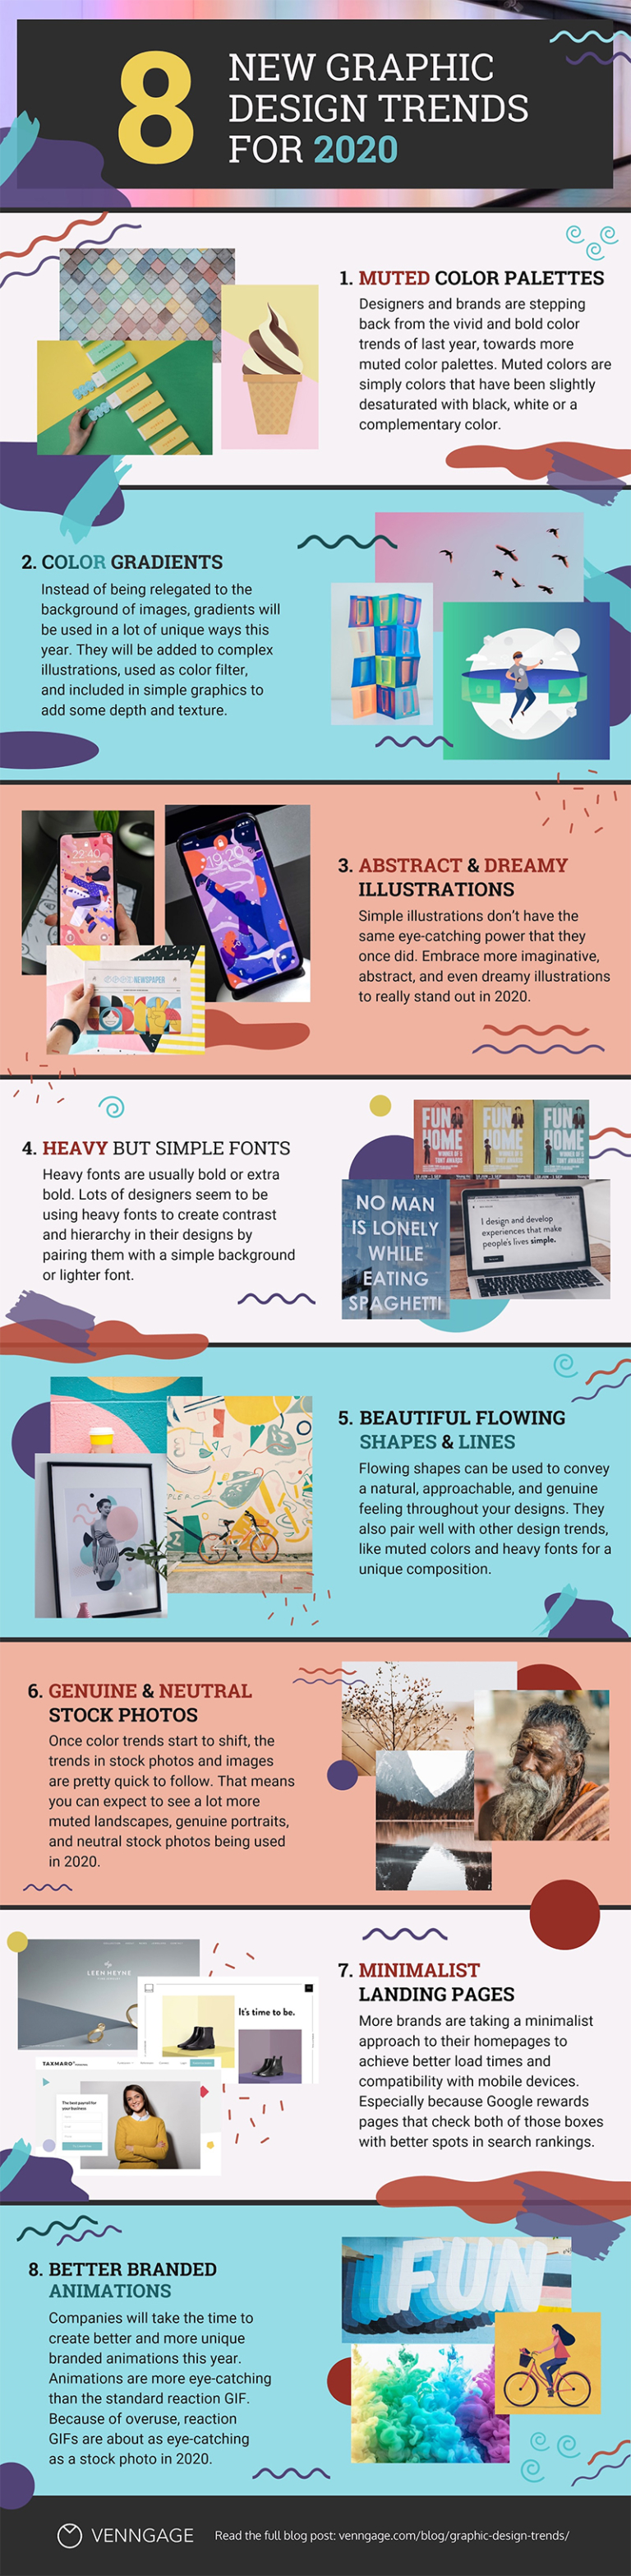 Infographic looks at emerging graphic design trends